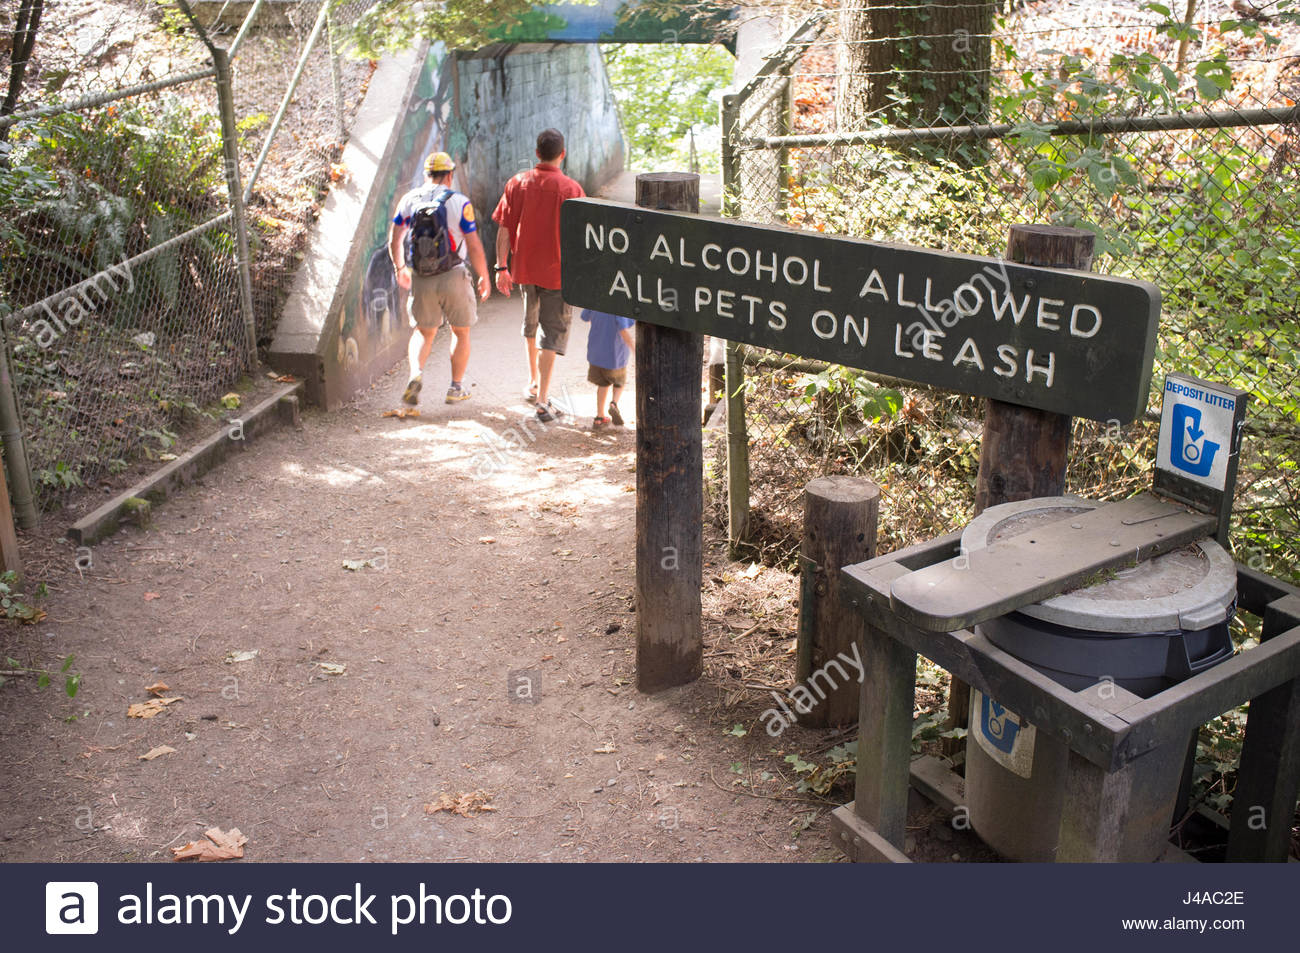 Trash can and sign prohibiting alcohol, Larrabee State Park, Bellingham, Whatcom County, Washington, USA - Stock Image